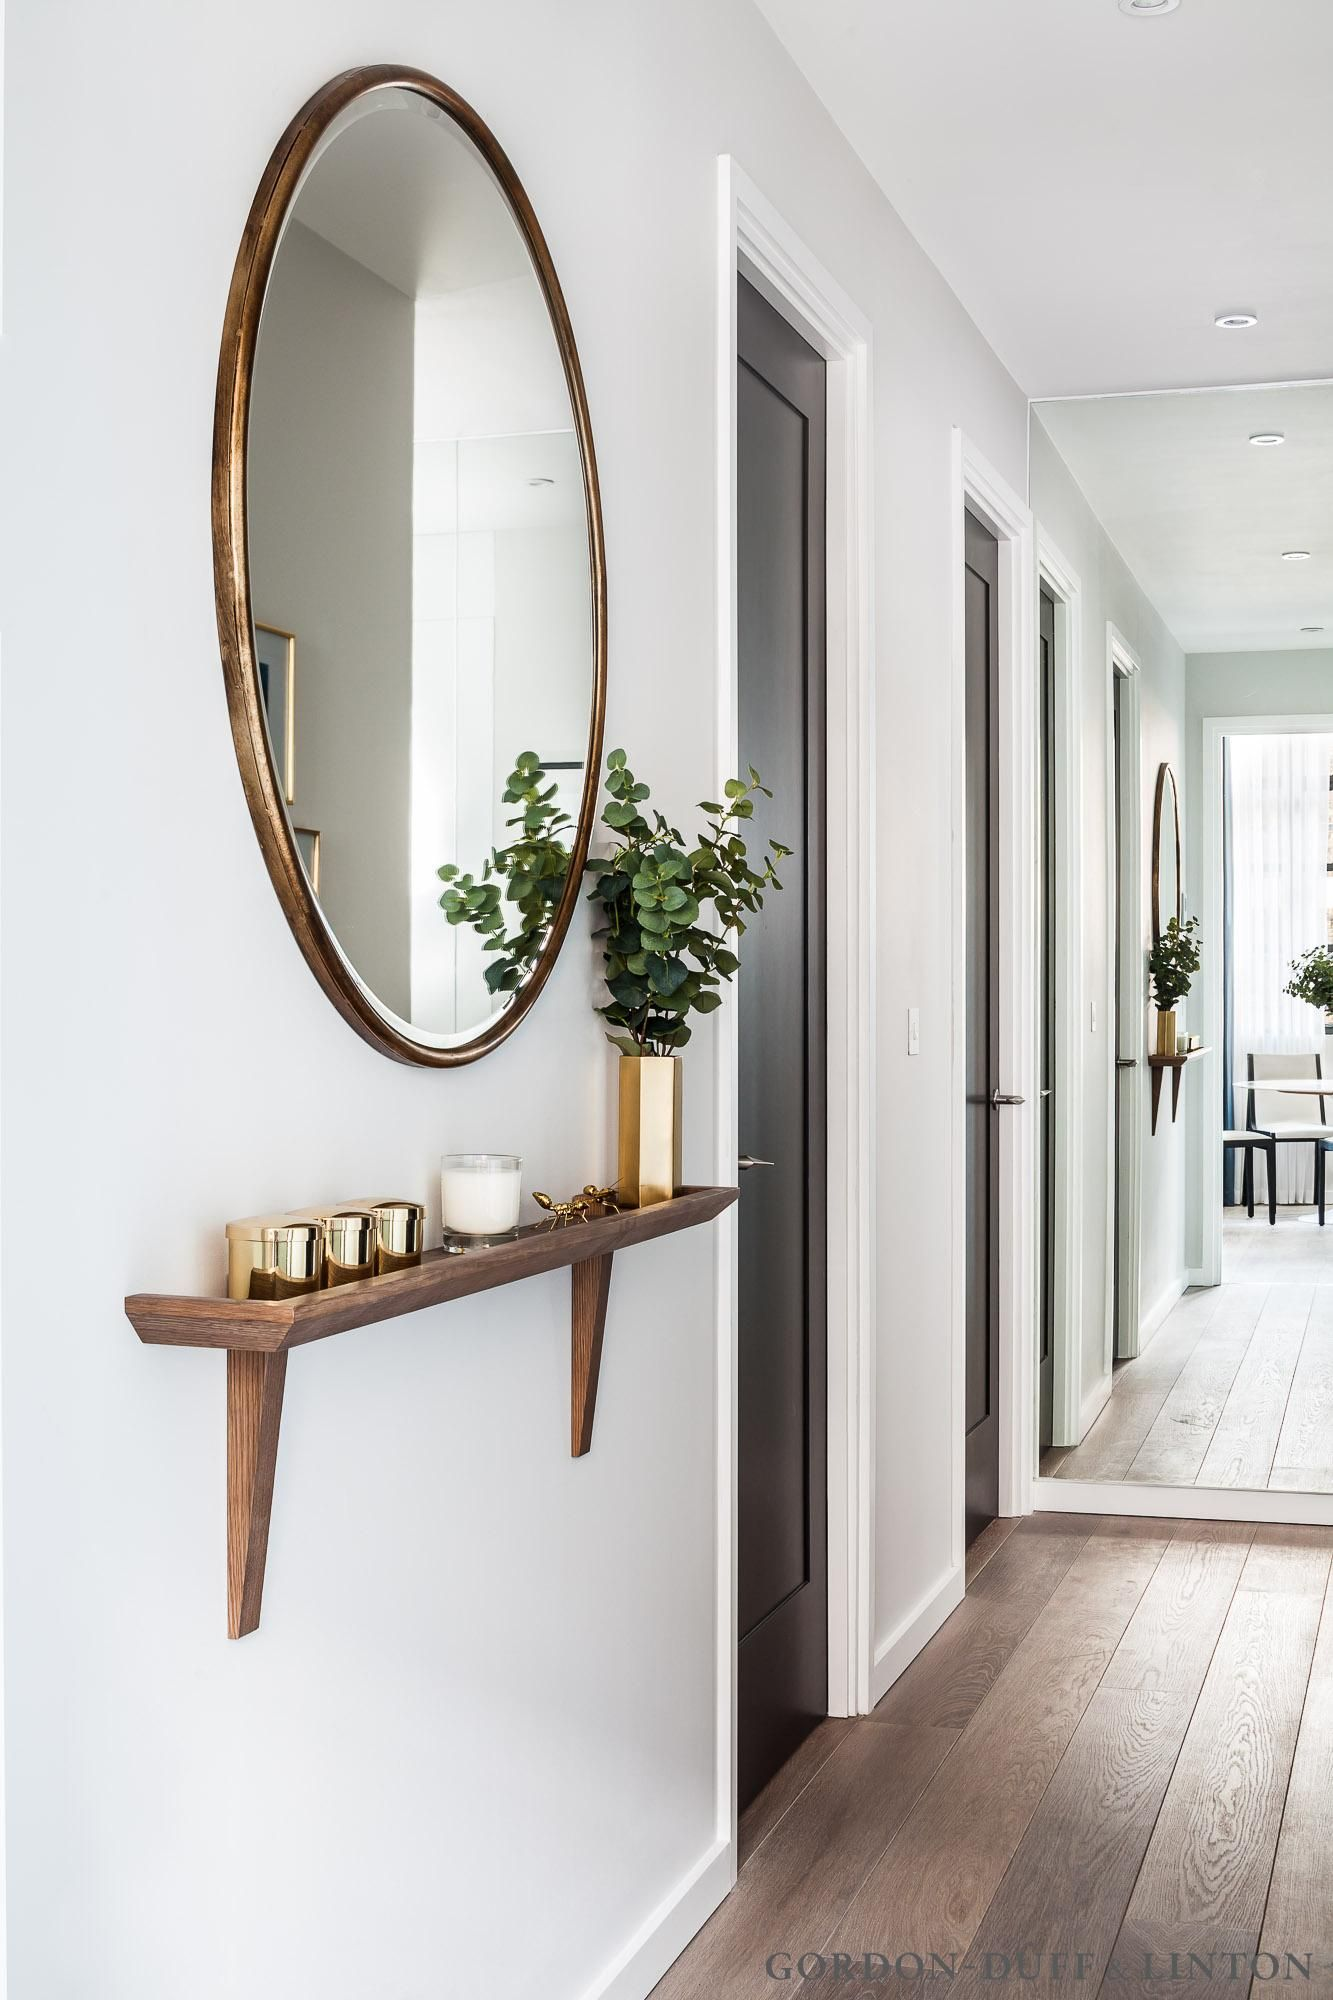 Like The Shallow Shelf. The Maple Building U2013 Gordon Duff U0026 Linton. View Of  Hallway With Bespoke Shelf And Bronze Trimmed Round Mirror.